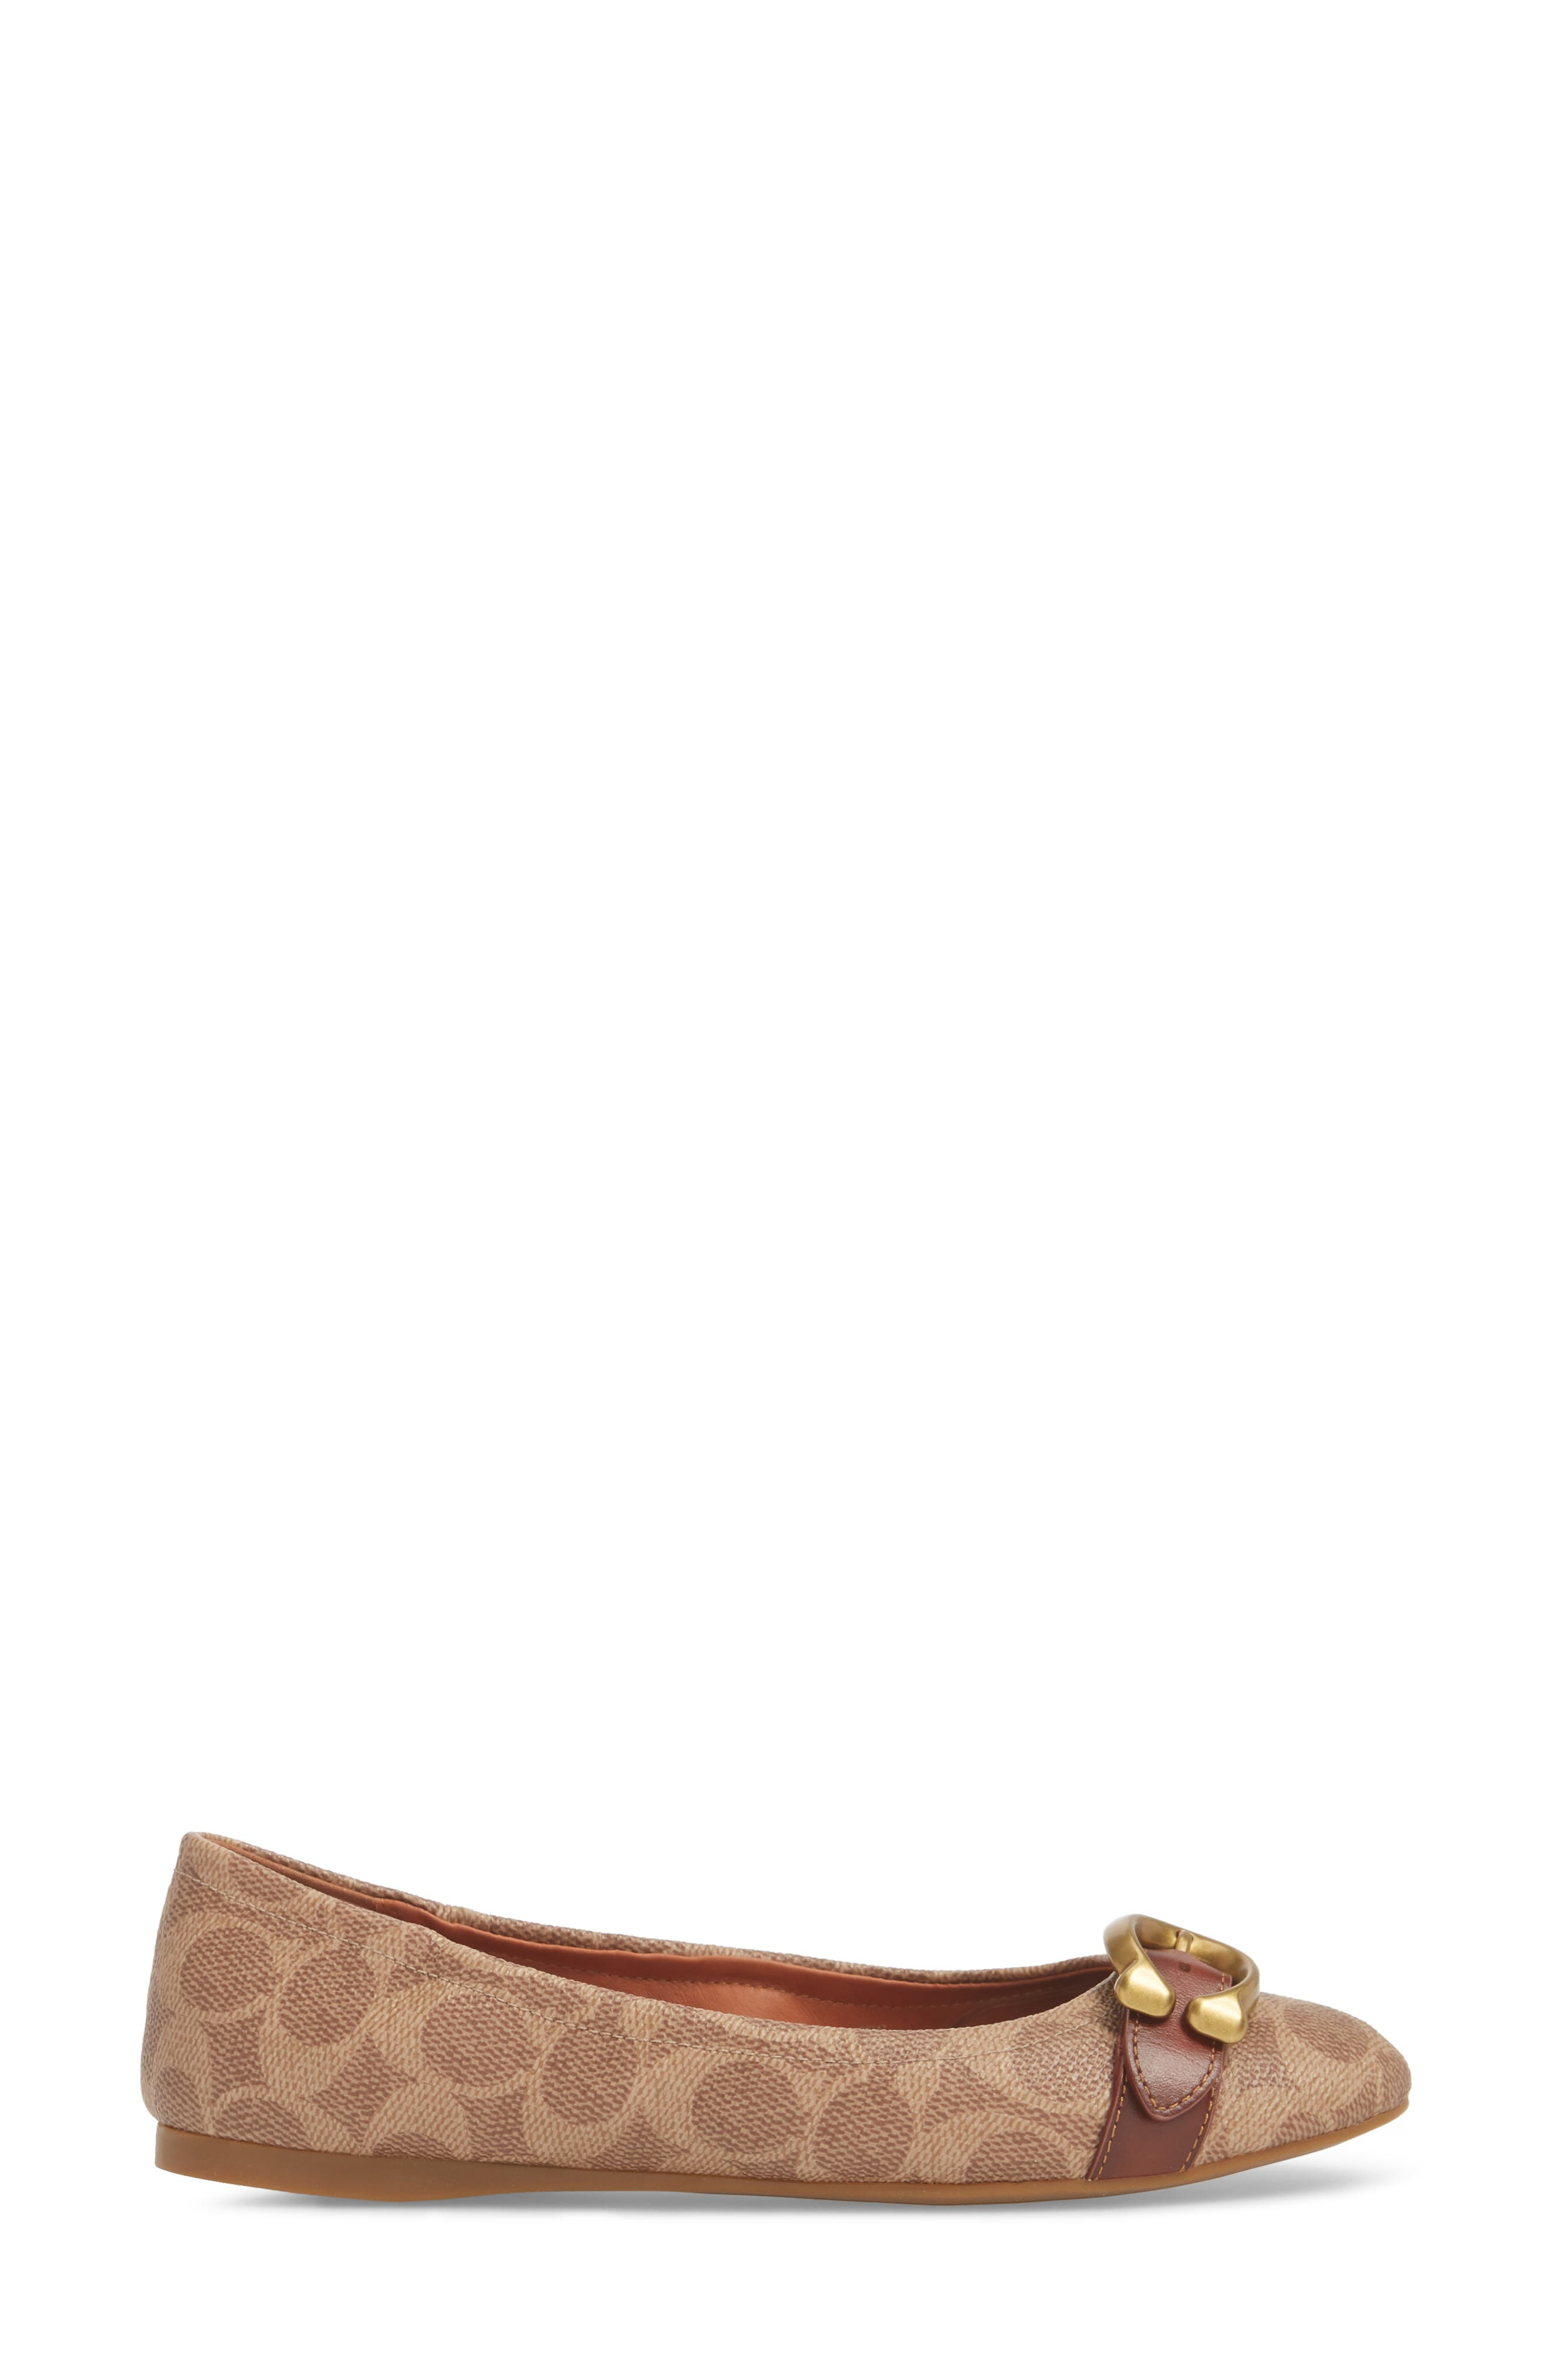 Stanton Buckle Flat,                             Alternate thumbnail 3, color,                             BROWN LEATHER